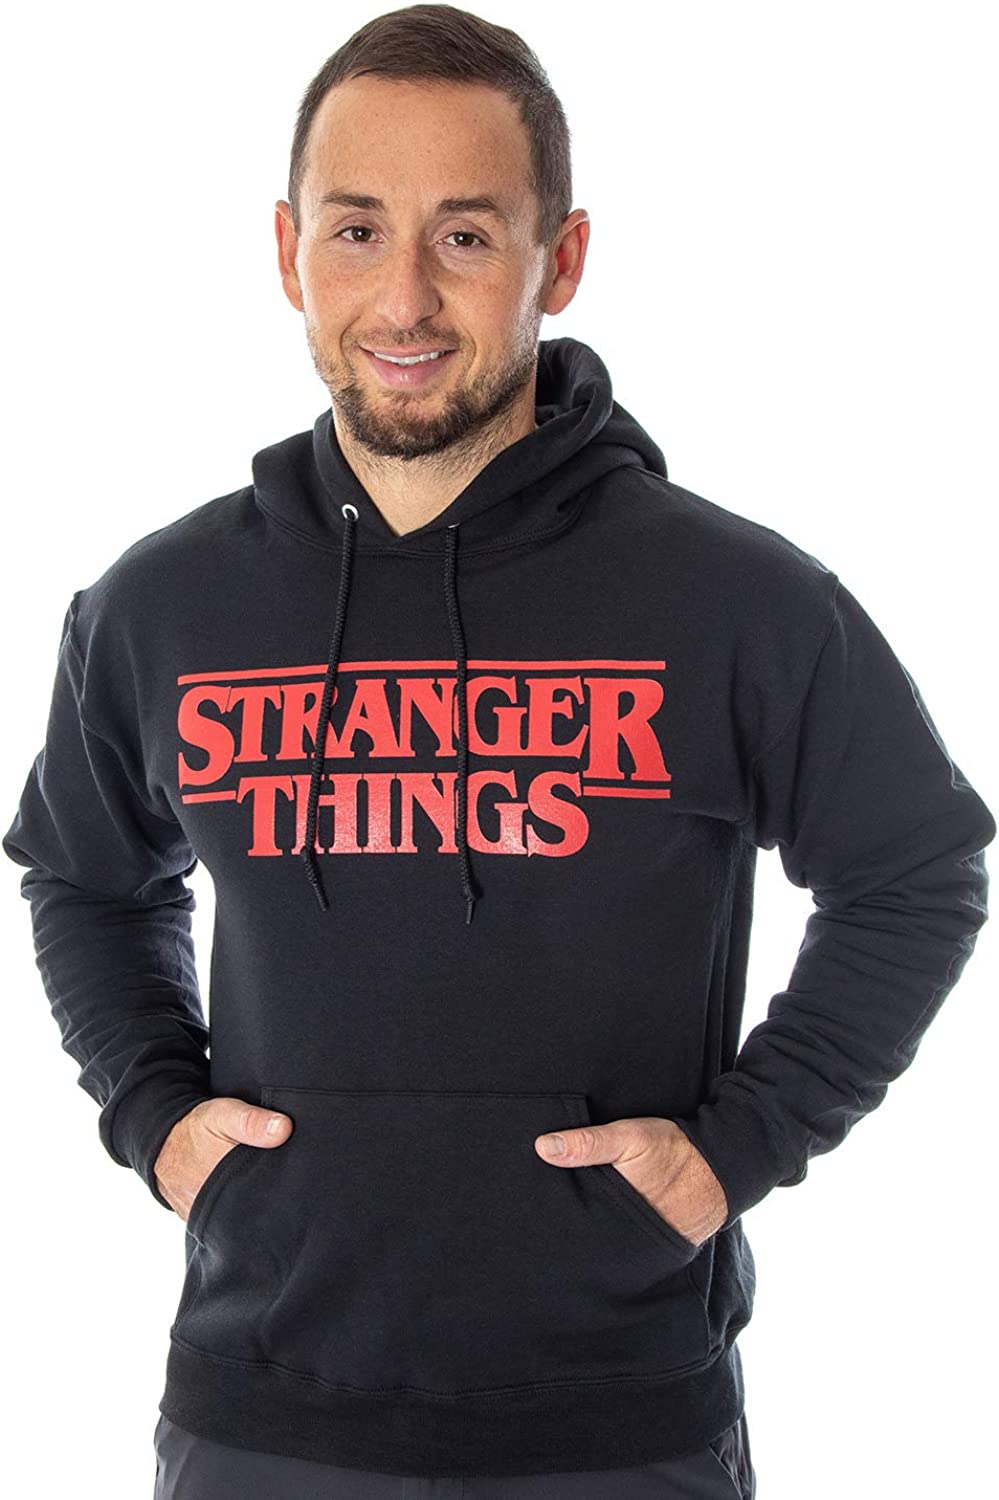 Seven Times Six Stranger Cash special price Titl Adult Men's Wholesale Things